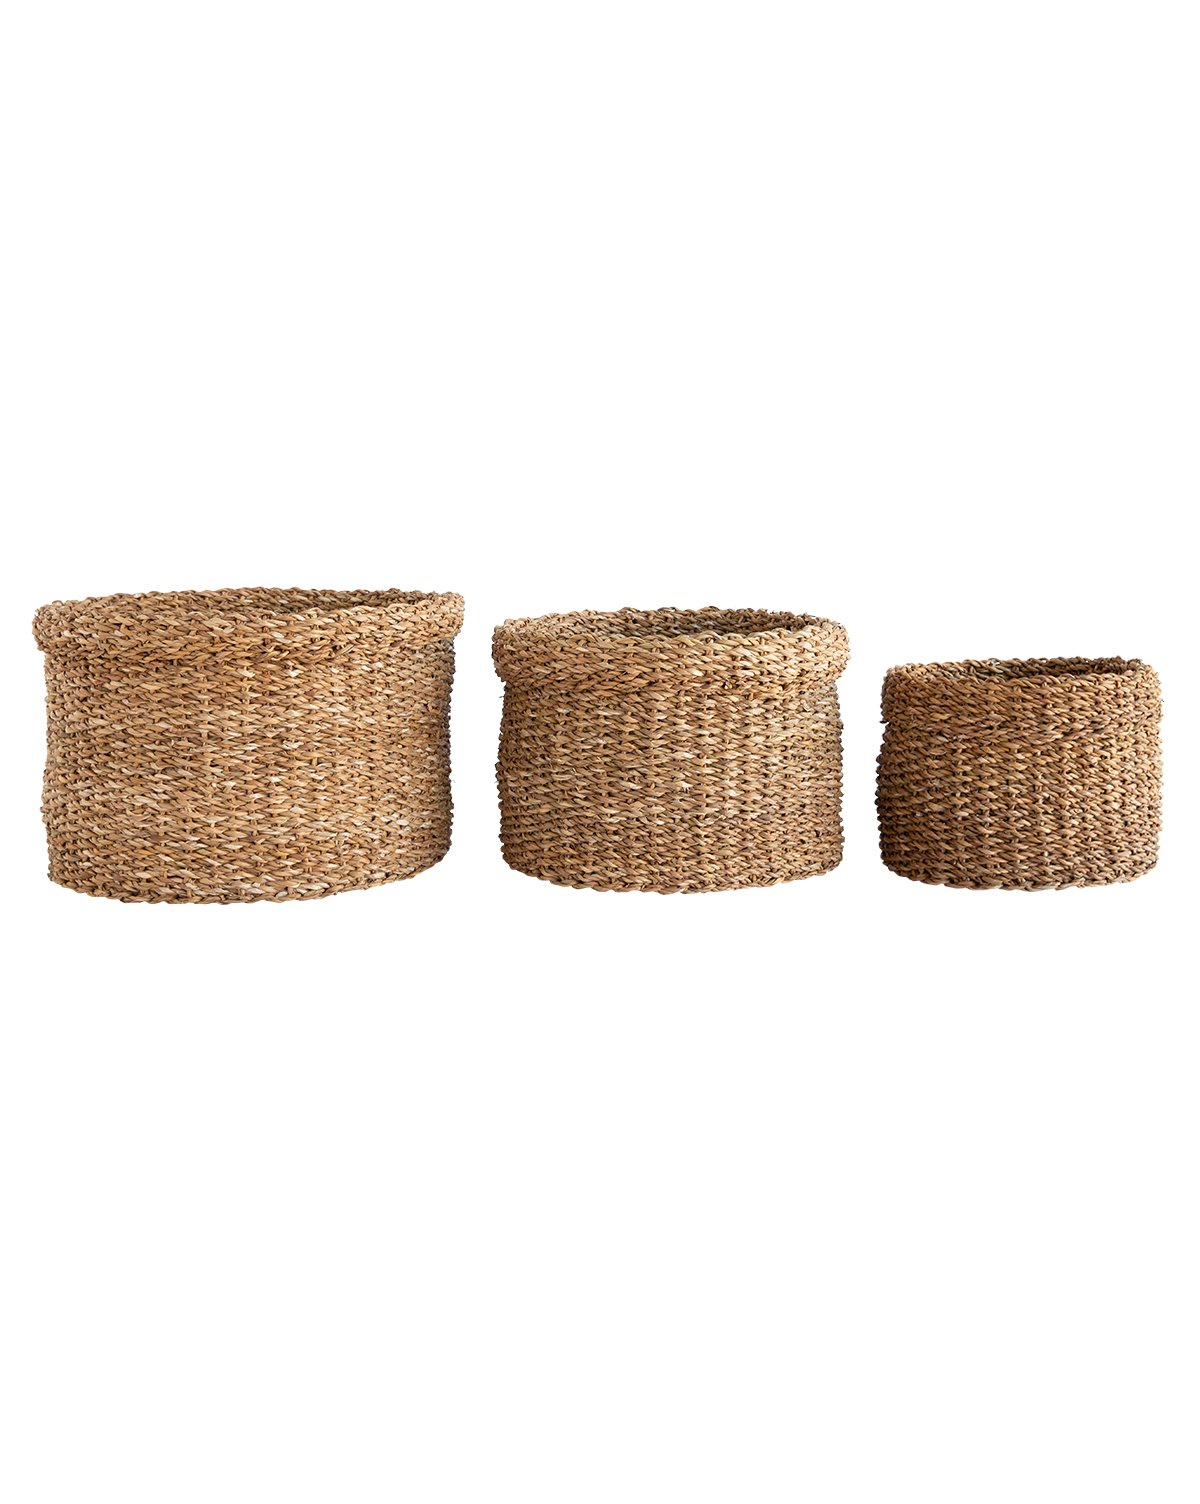 Cuffed_Seagrass_Baskets_2.jpg